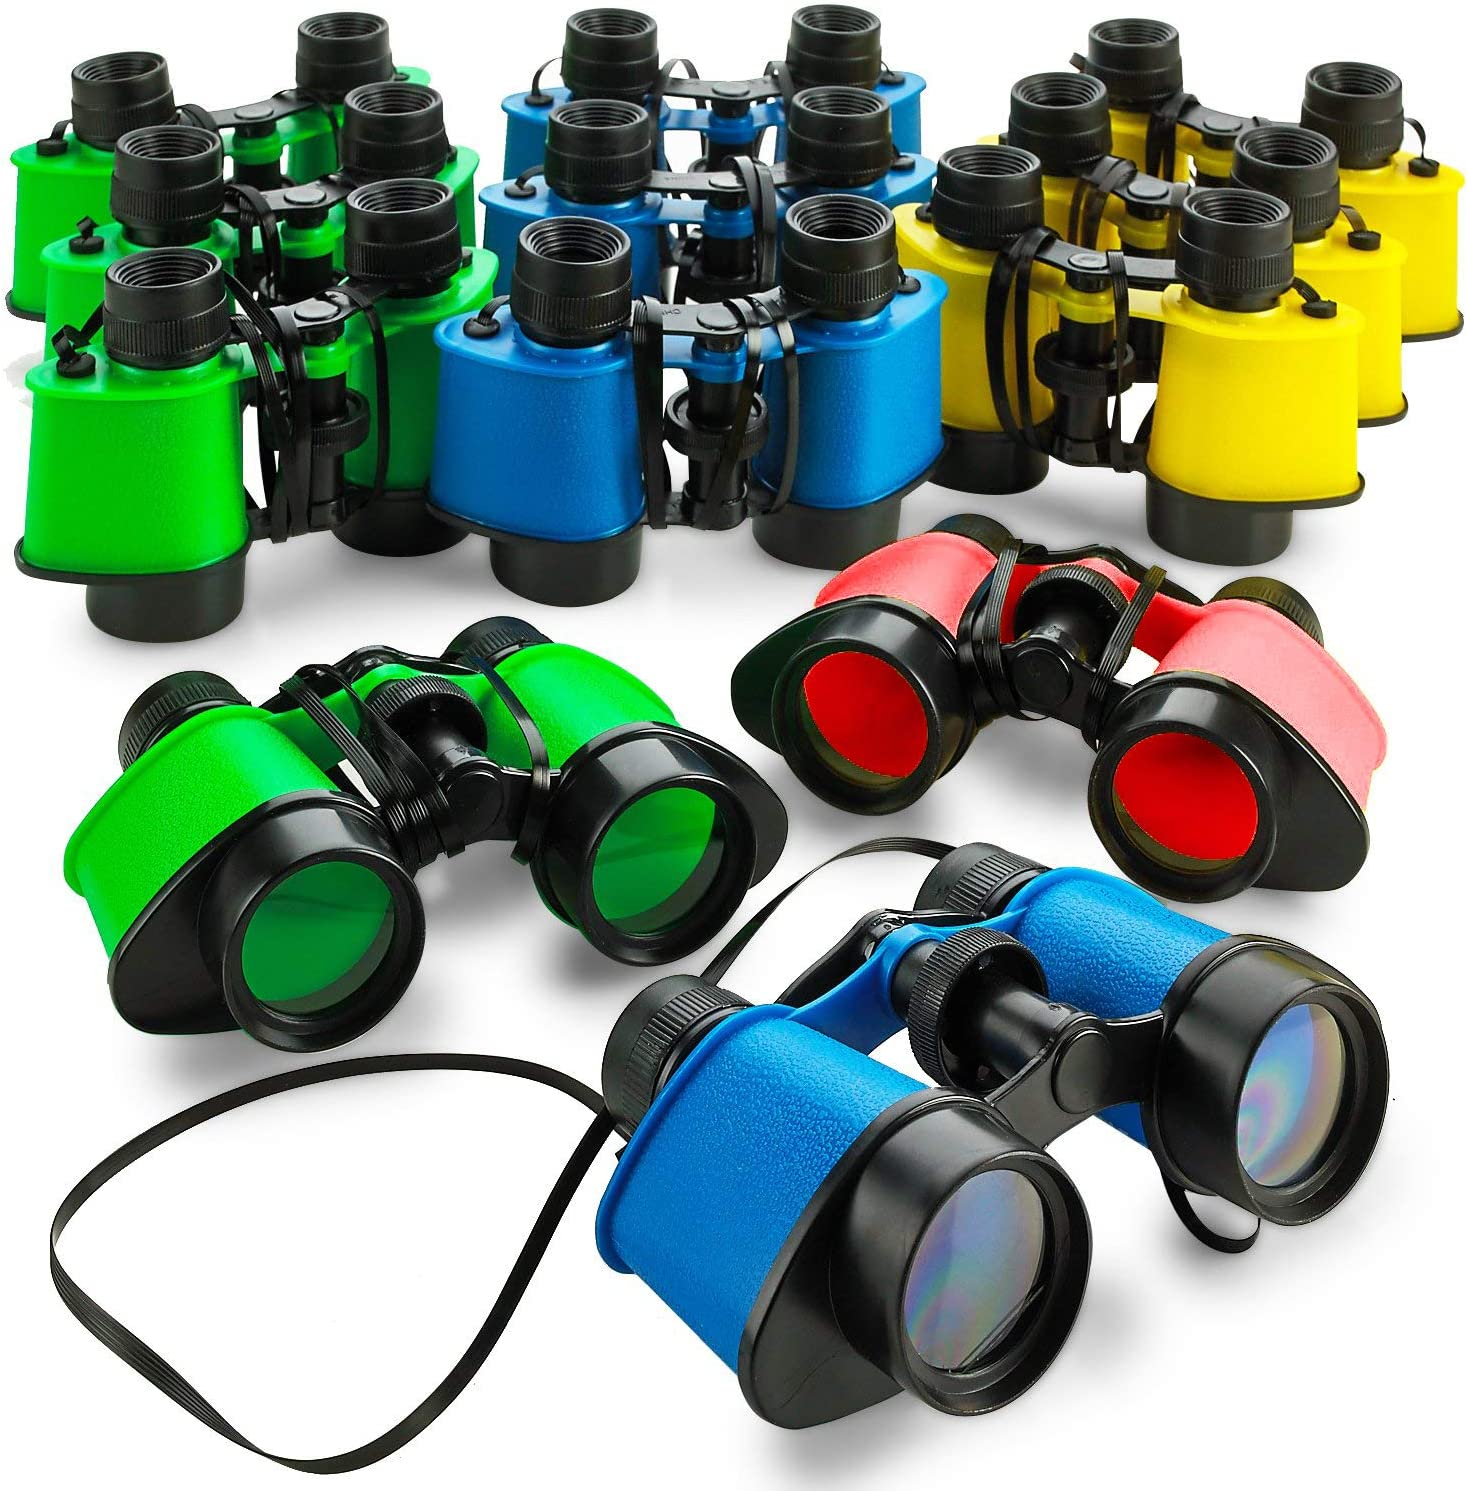 Kicko Toy Binoculars with Neck String - 5 Inch Pack Recommended Max 45% OFF 3.5 24 x